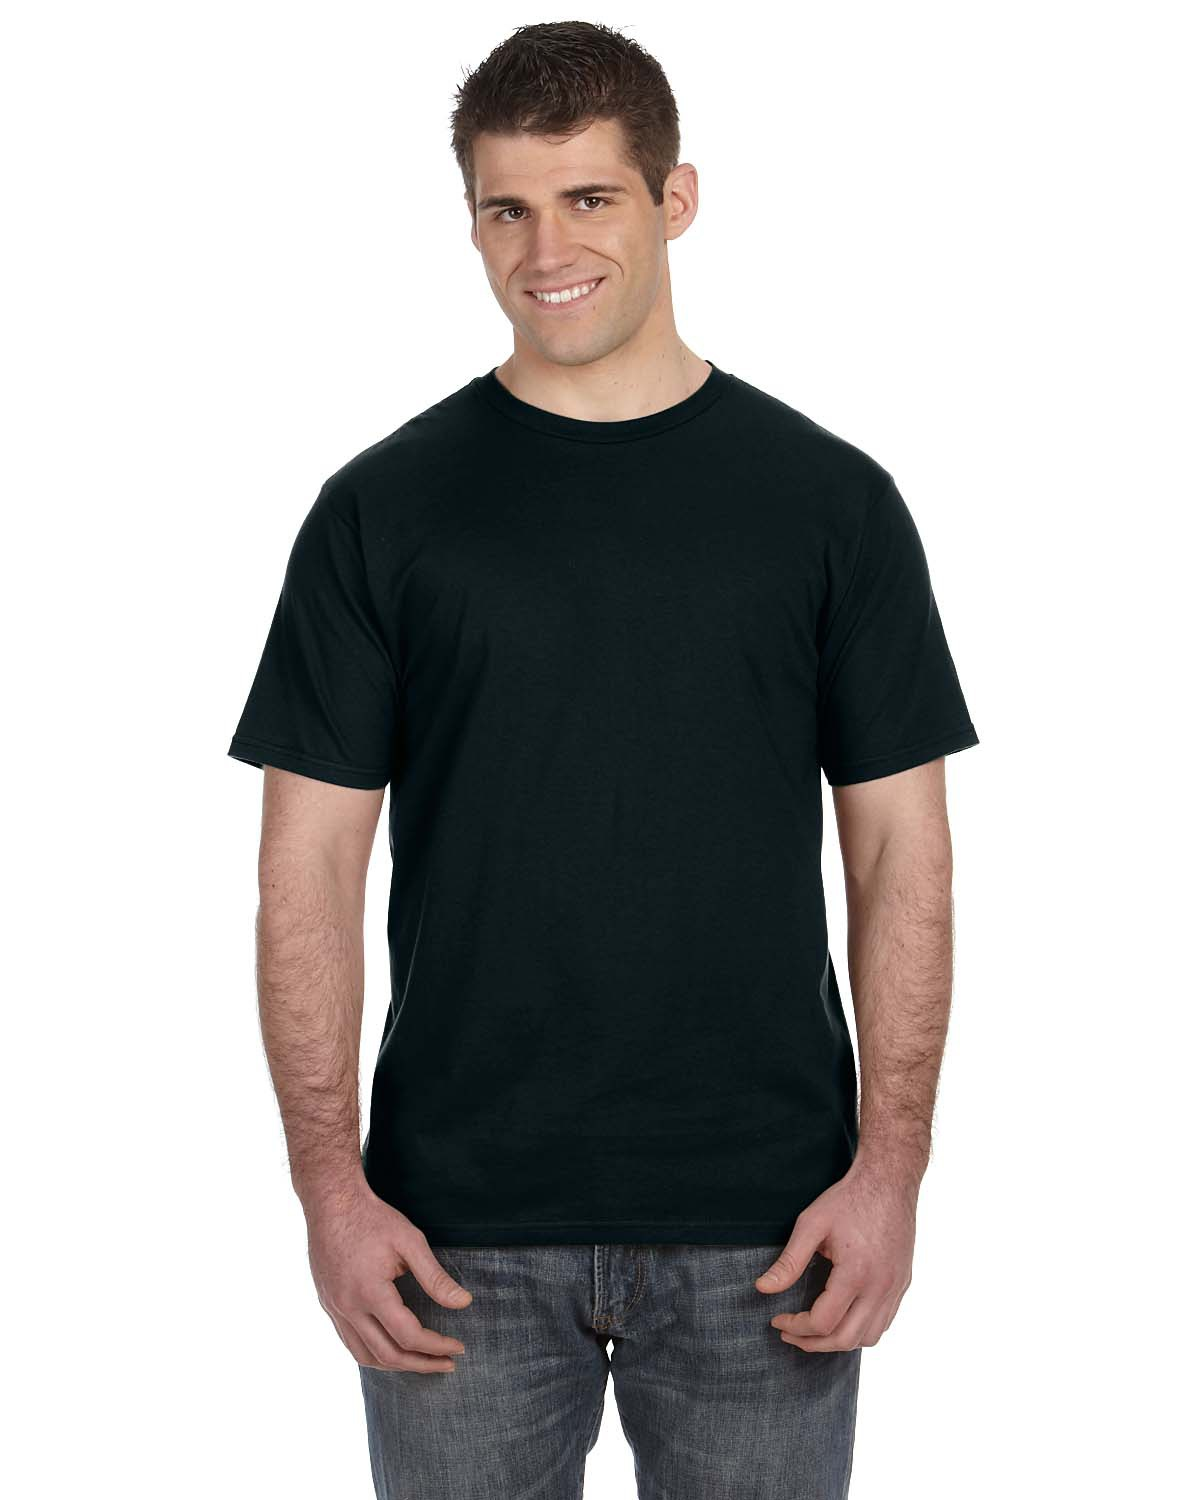 Anvil 980 - 100% Cotton Lightweight T-Shirt